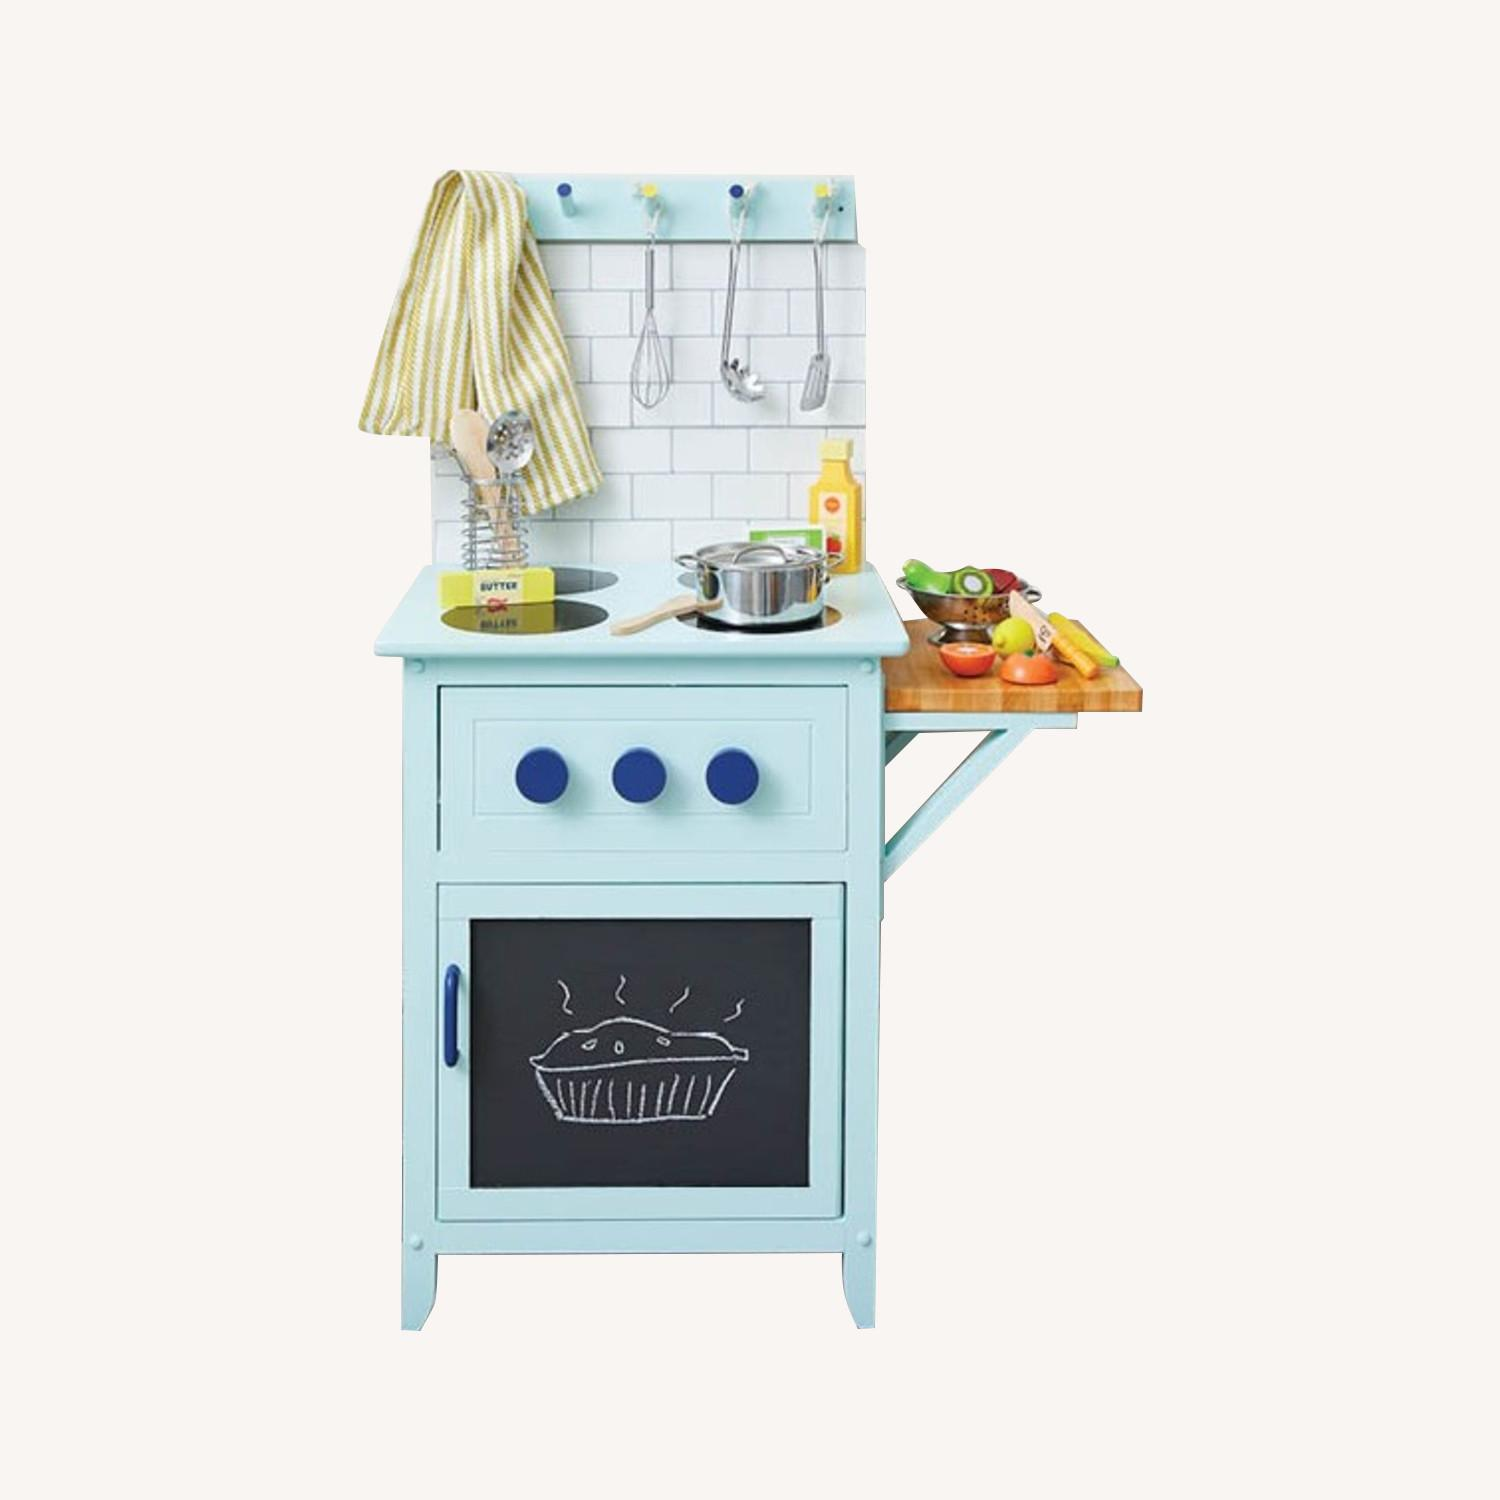 DIY Kids Kitchen Makeover by Good Housekeeping